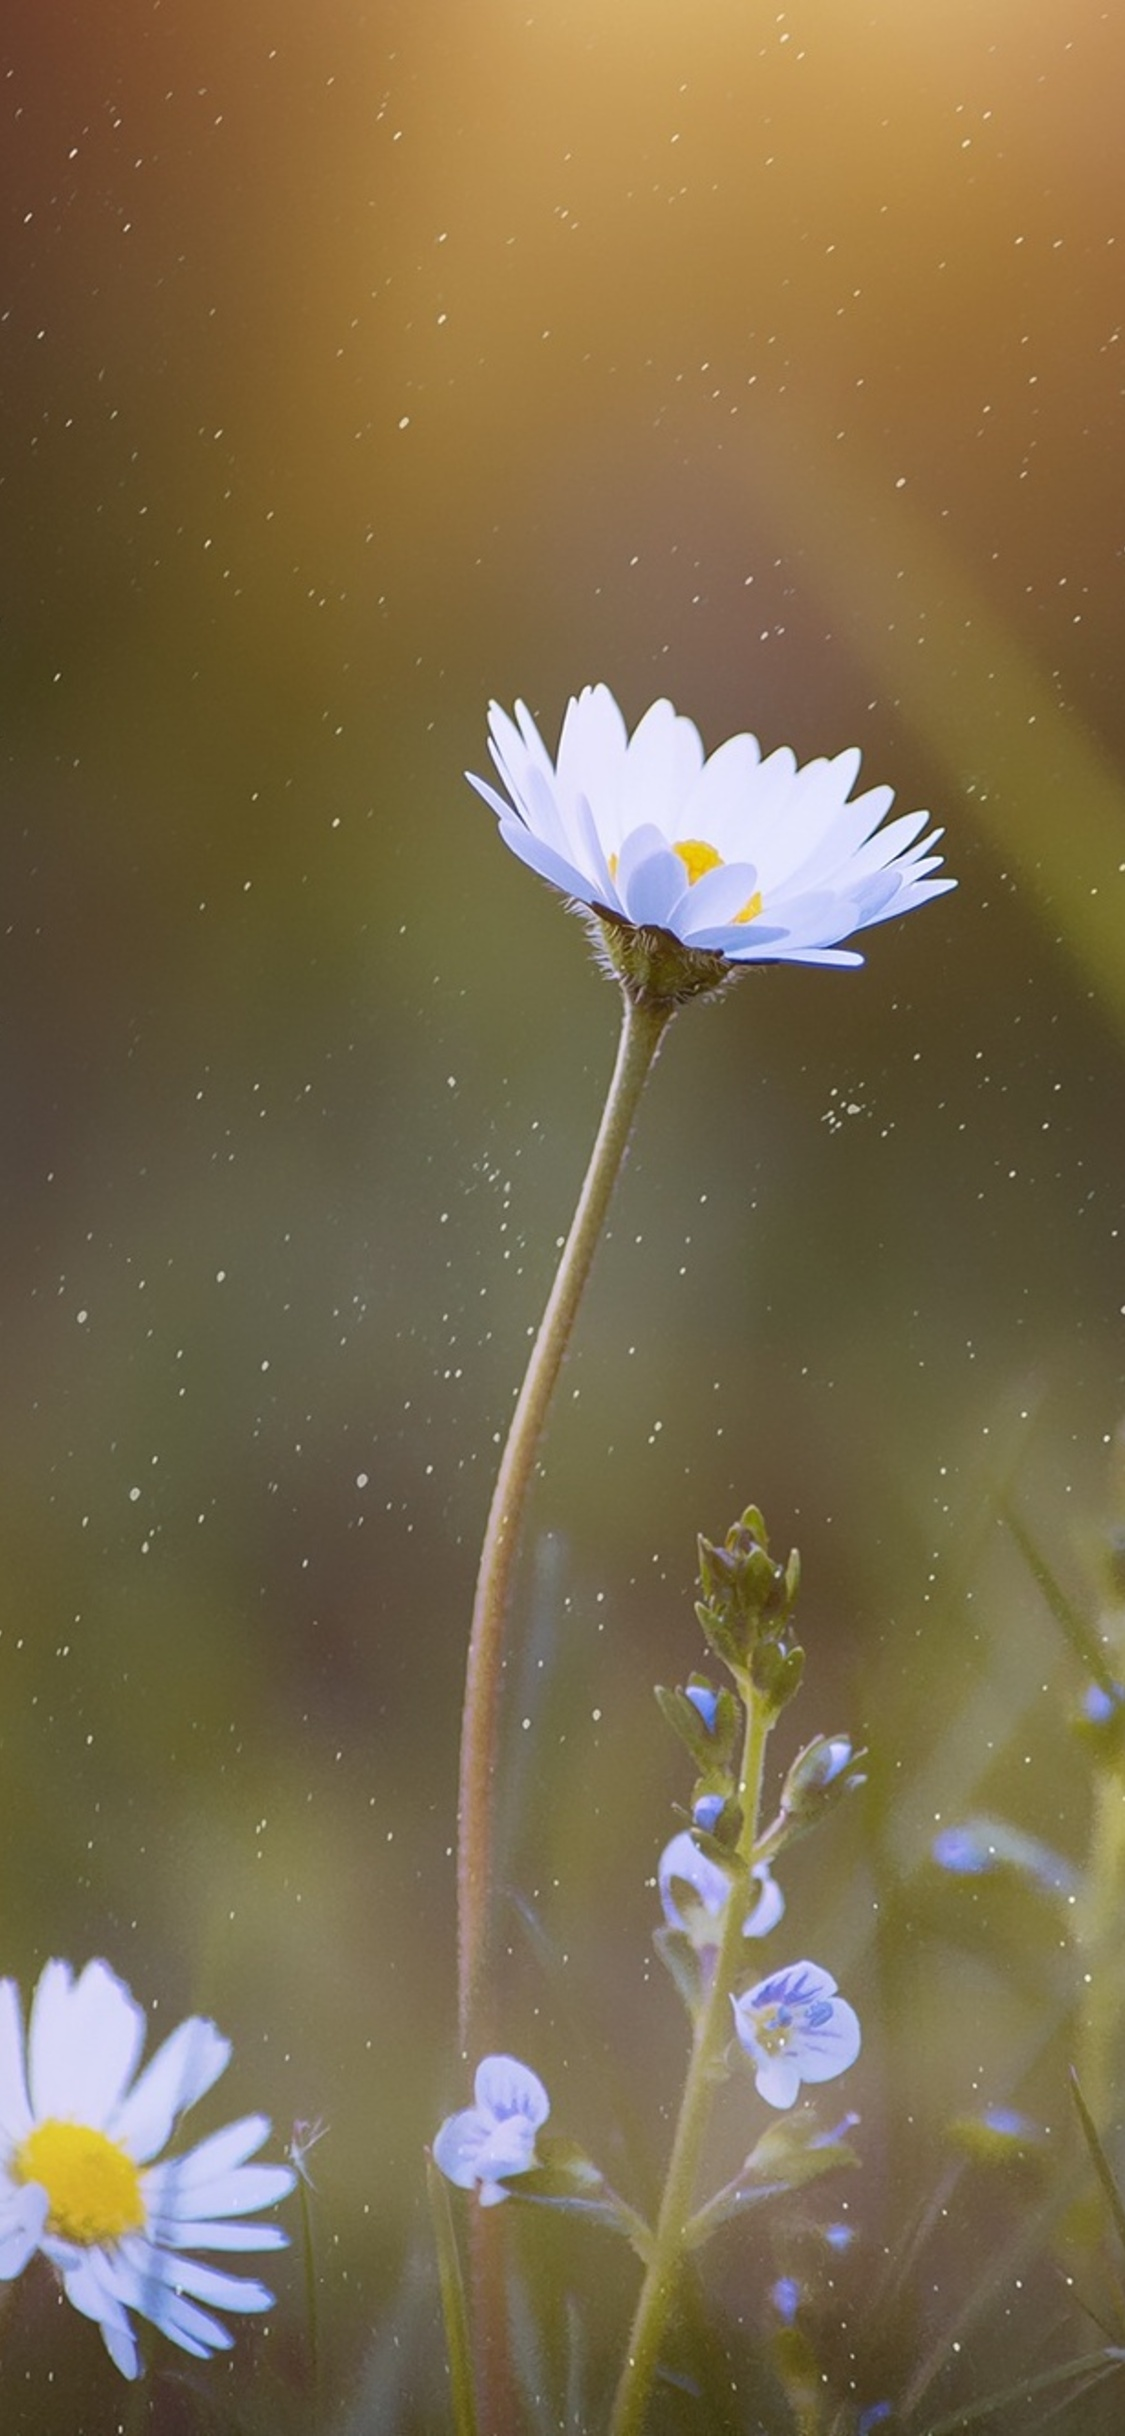 1125x2436 Daisy Blossom Flower Iphone Xs Iphone 10 Iphone X Hd 4k